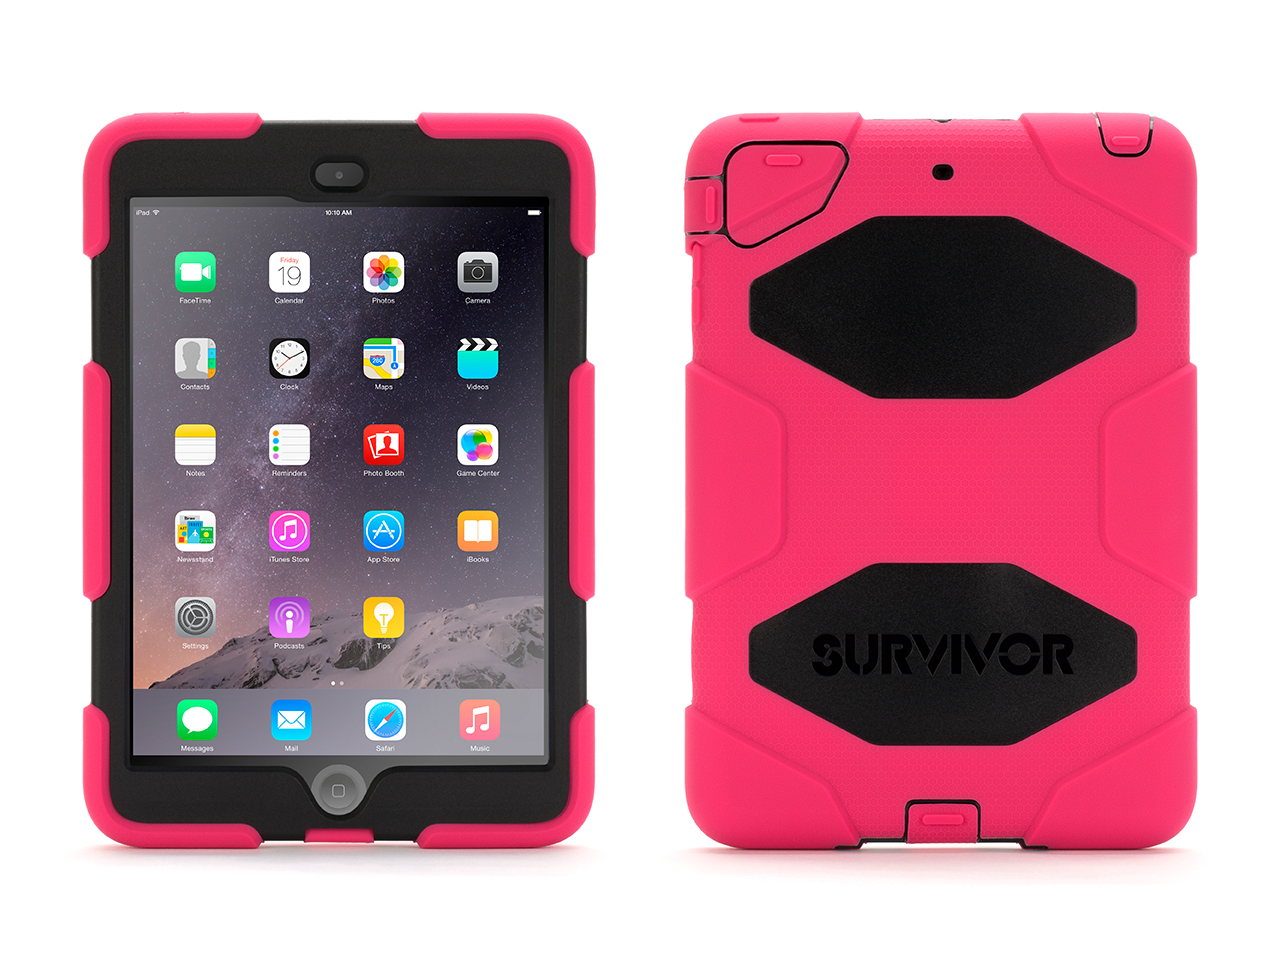 Griffin Survivor All-Terrain Heavy-Duty Case + Stand for iPad mini, mini 2, & mini 3-Military-duty case with stand at Sears.com